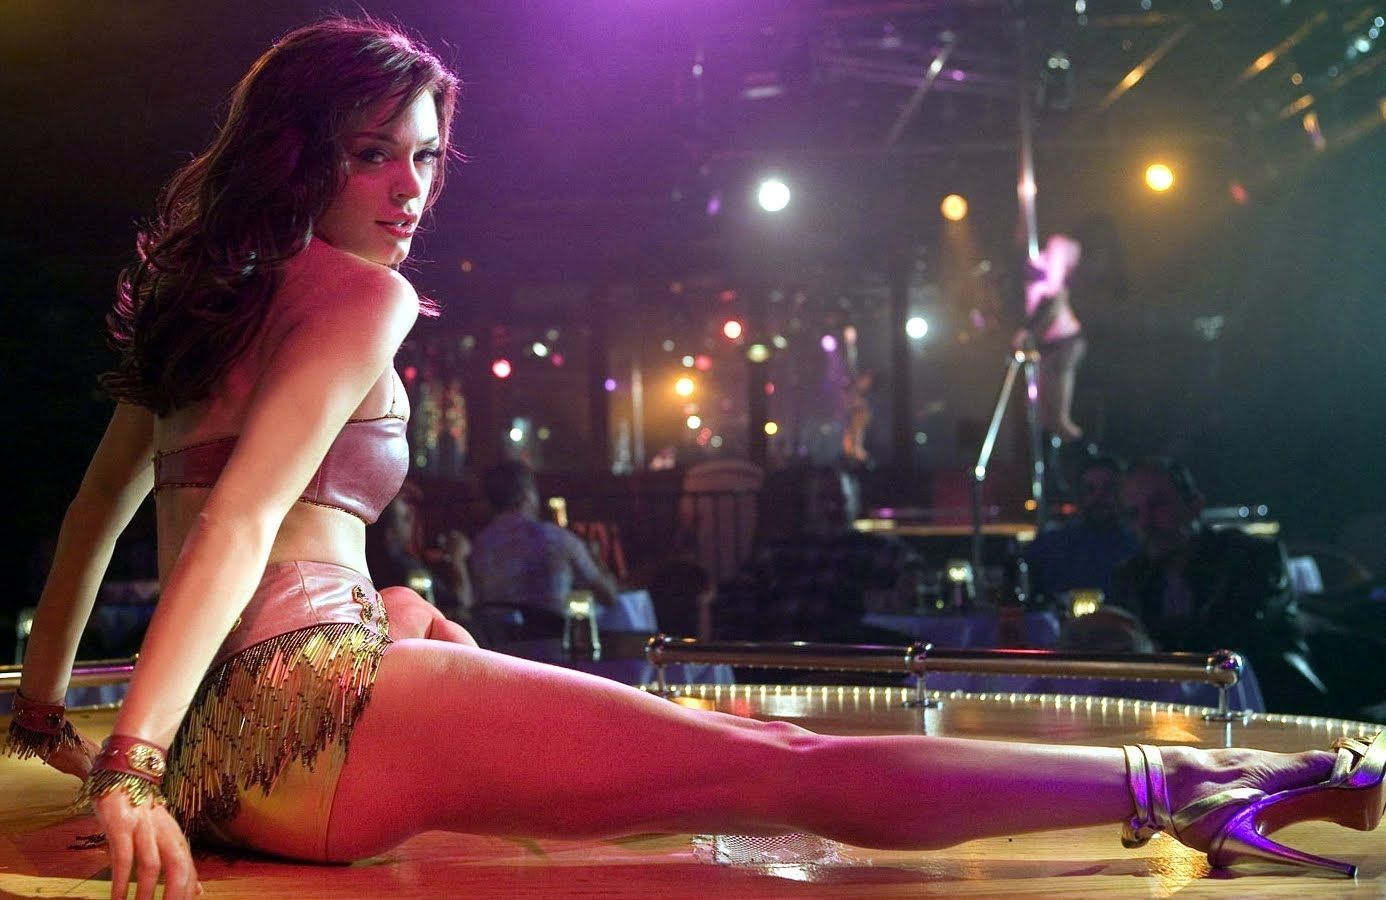 tribute to actresses that did some real hot stripper